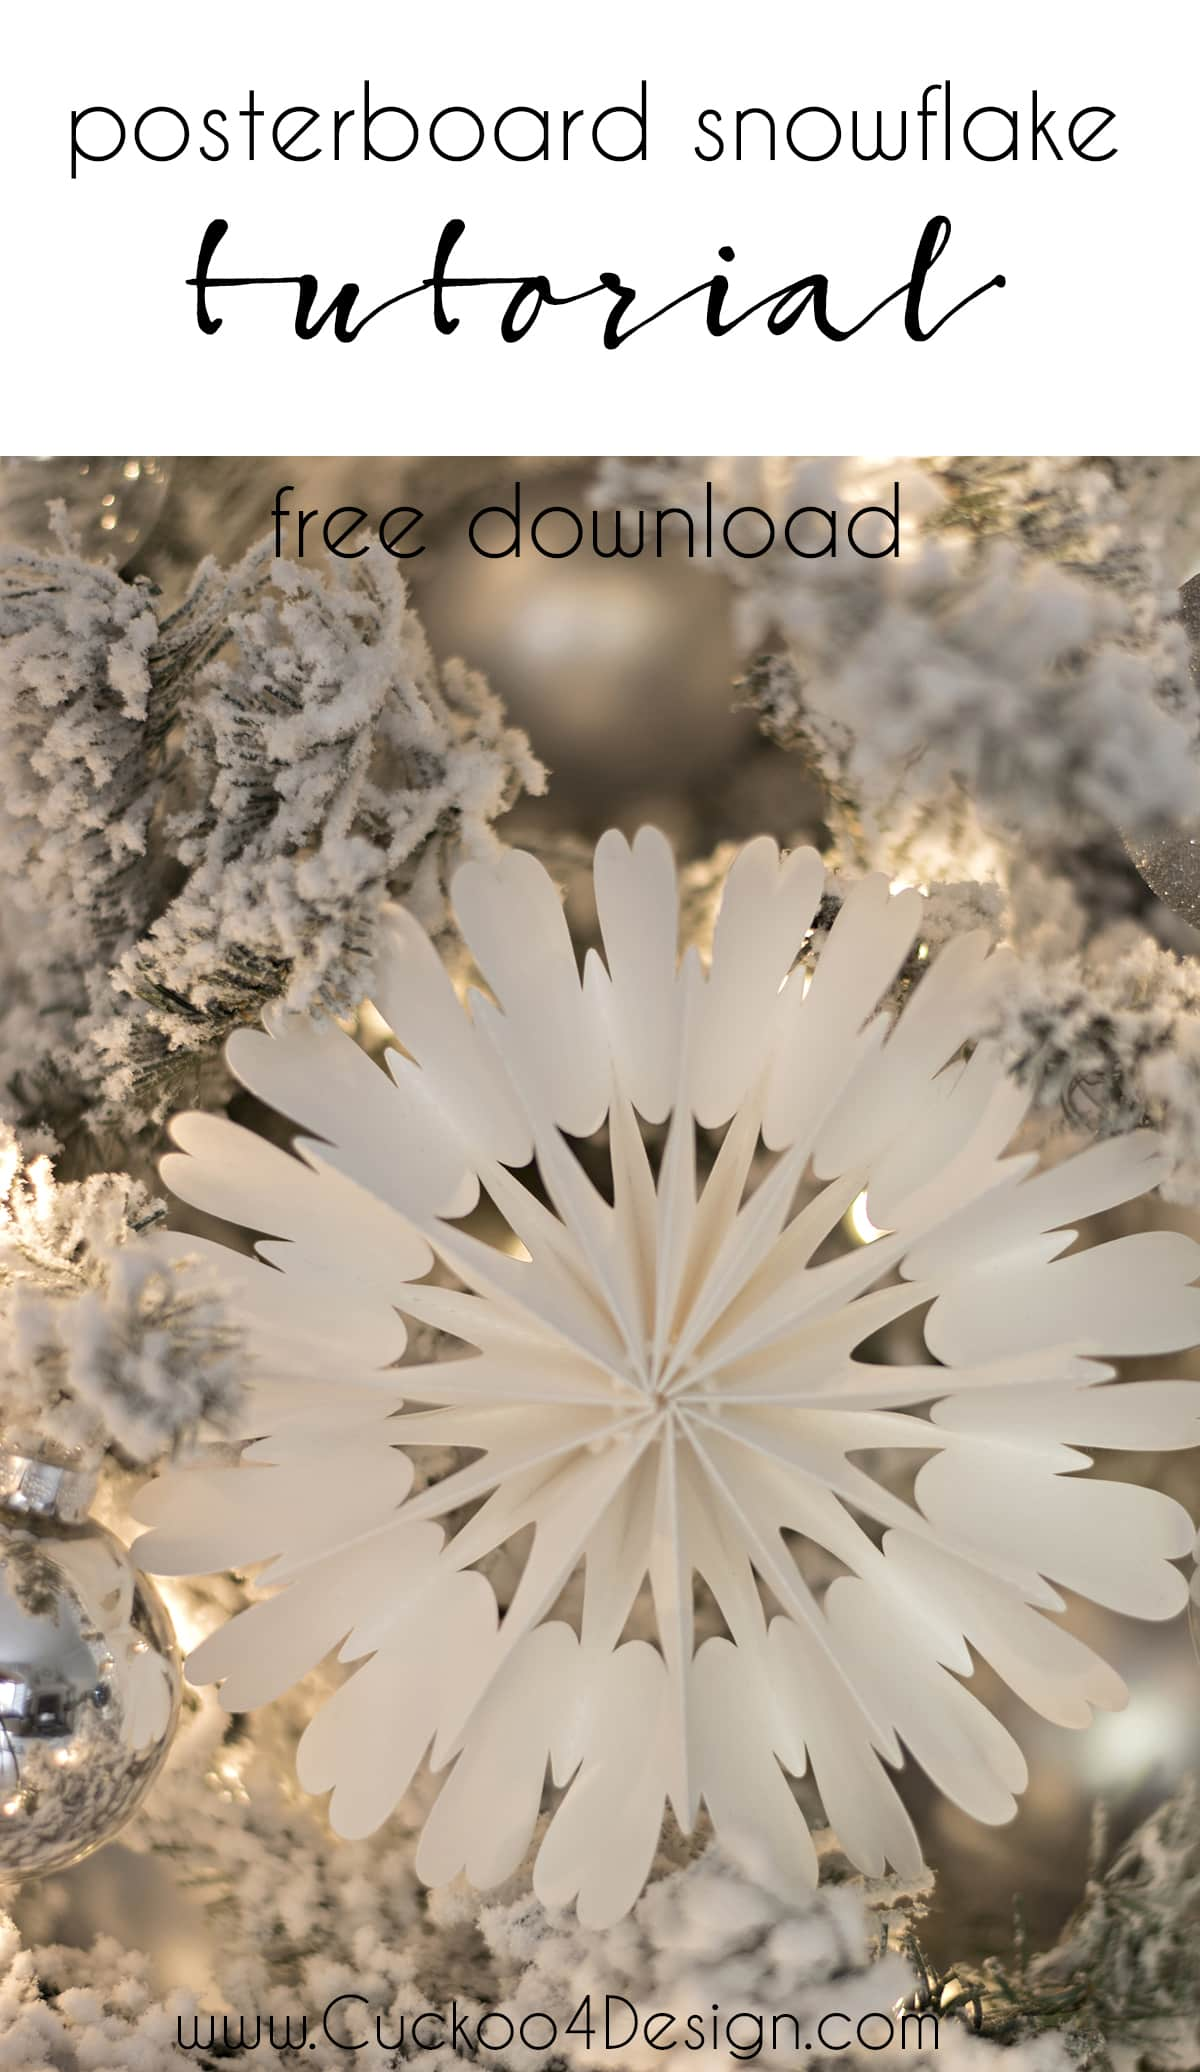 diy_cardboard_snowflake_ornament_free-download_cuckoo4design